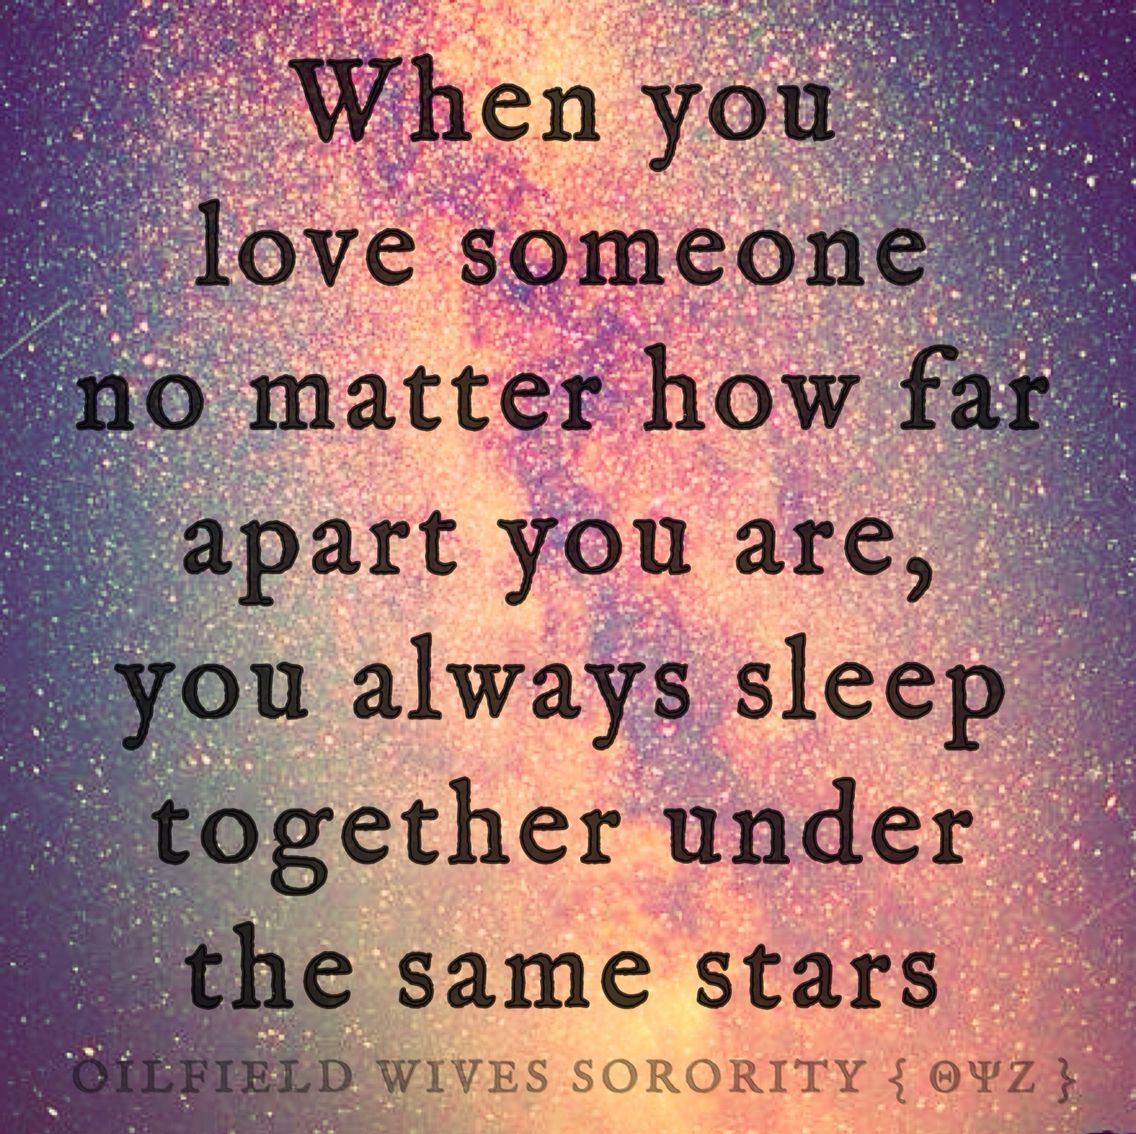 Love Under The Stars Quotes: When You Love Someone No Matter How Far Apart You Are, You